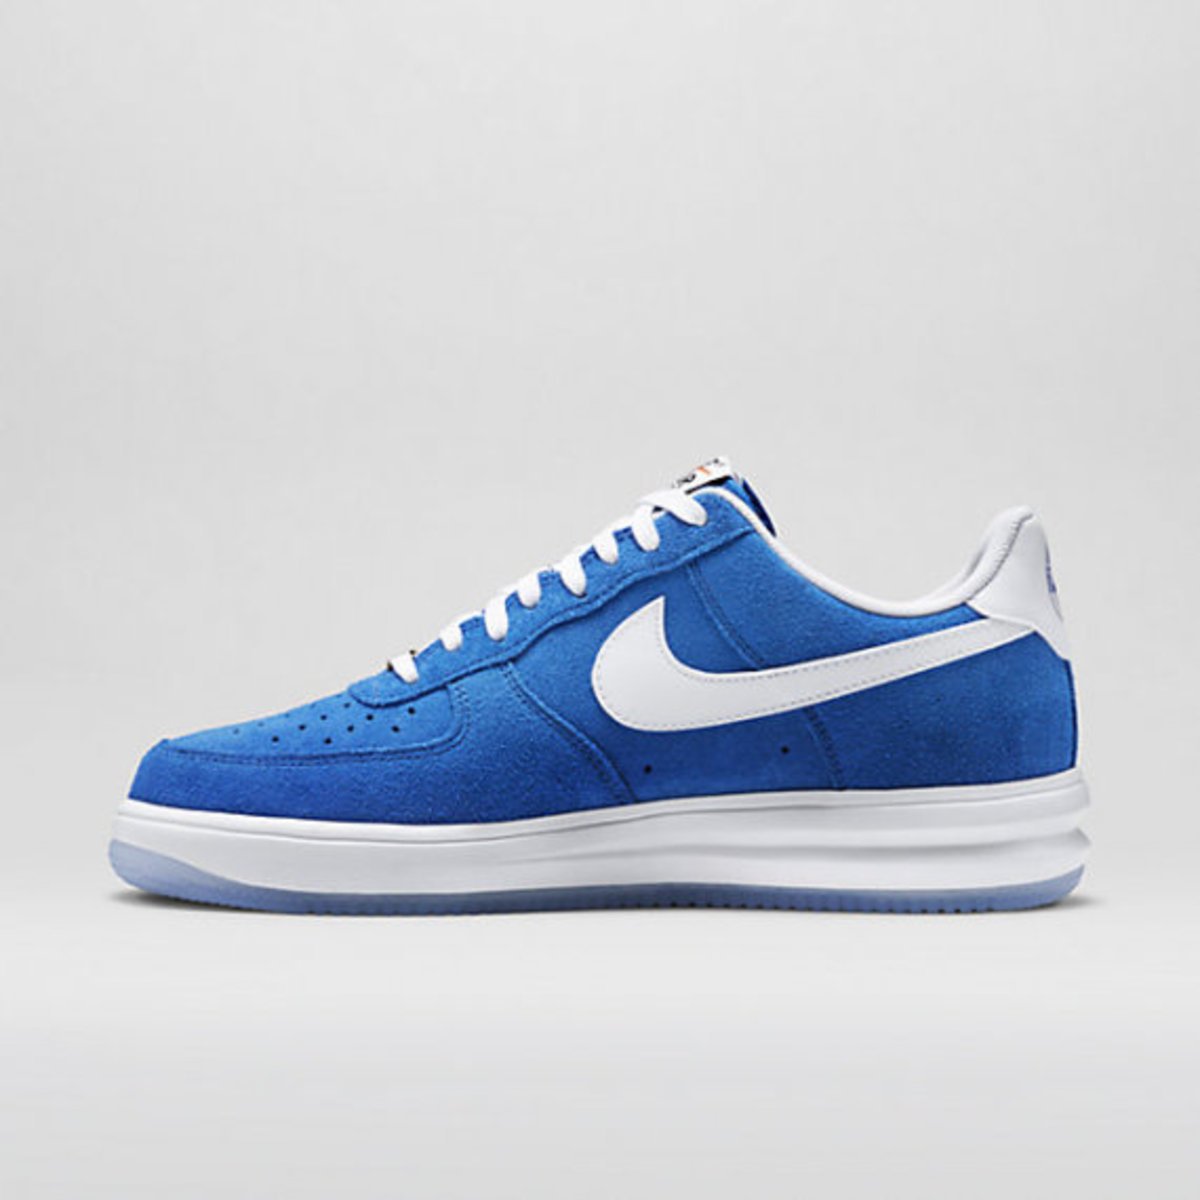 nike lunar force 1 14 suede available now freshness mag. Black Bedroom Furniture Sets. Home Design Ideas